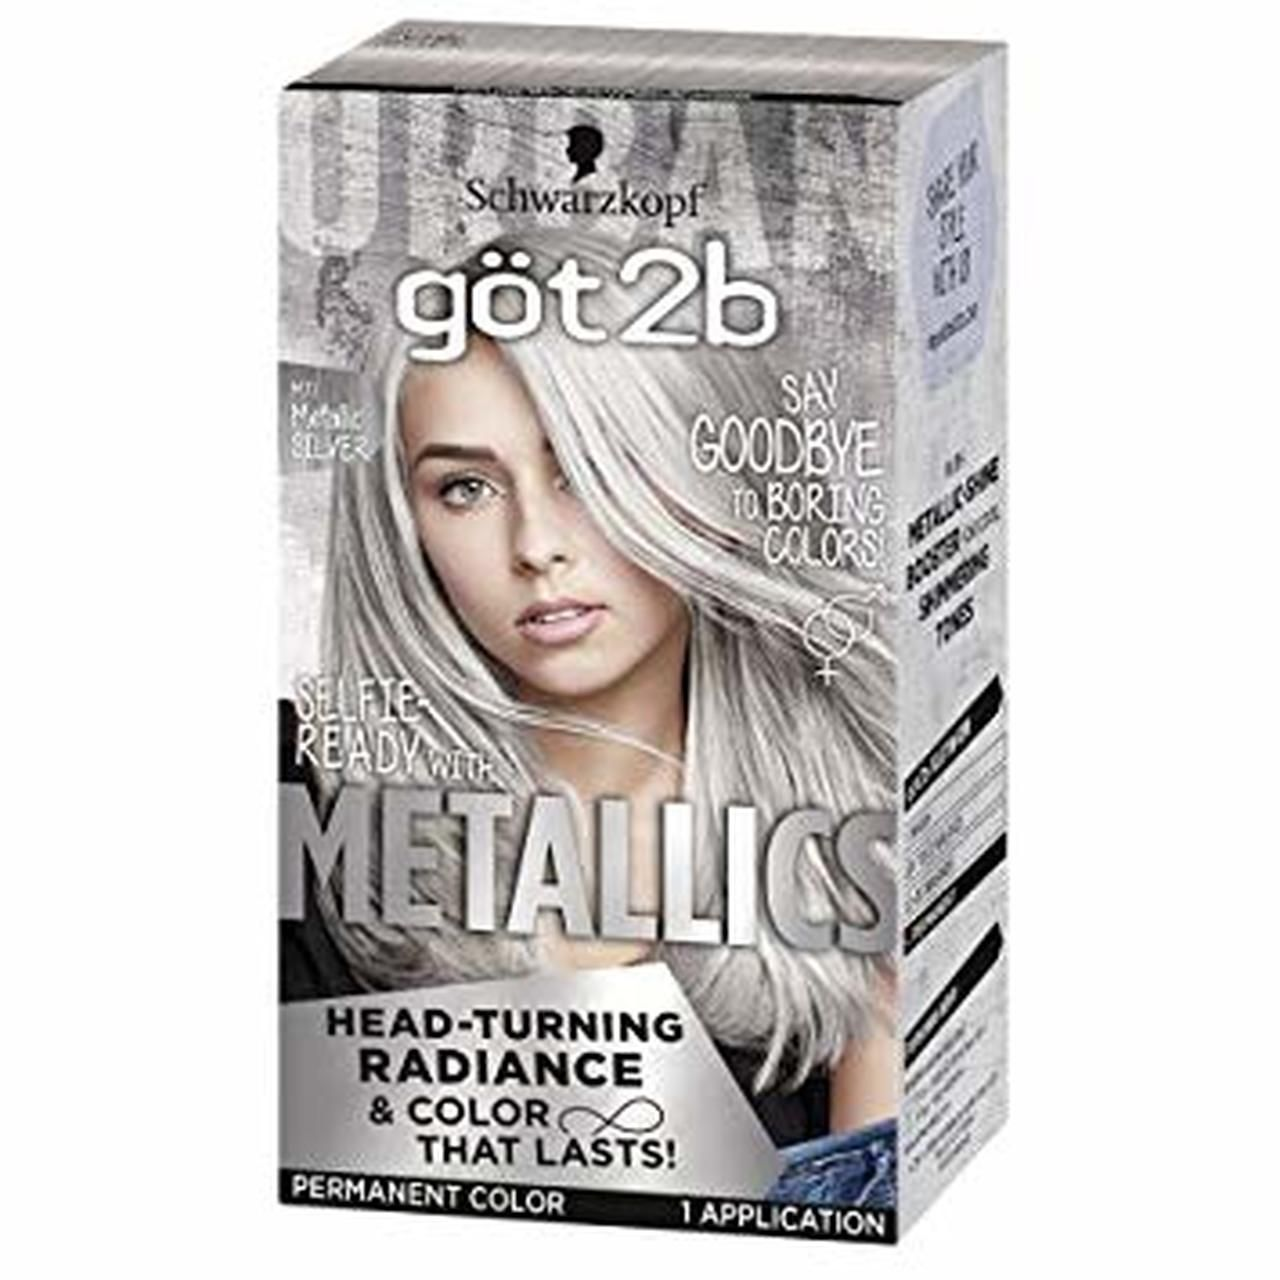 Schwarzkopf Got2b Metallics Permanent Hair Color M71 Metallic